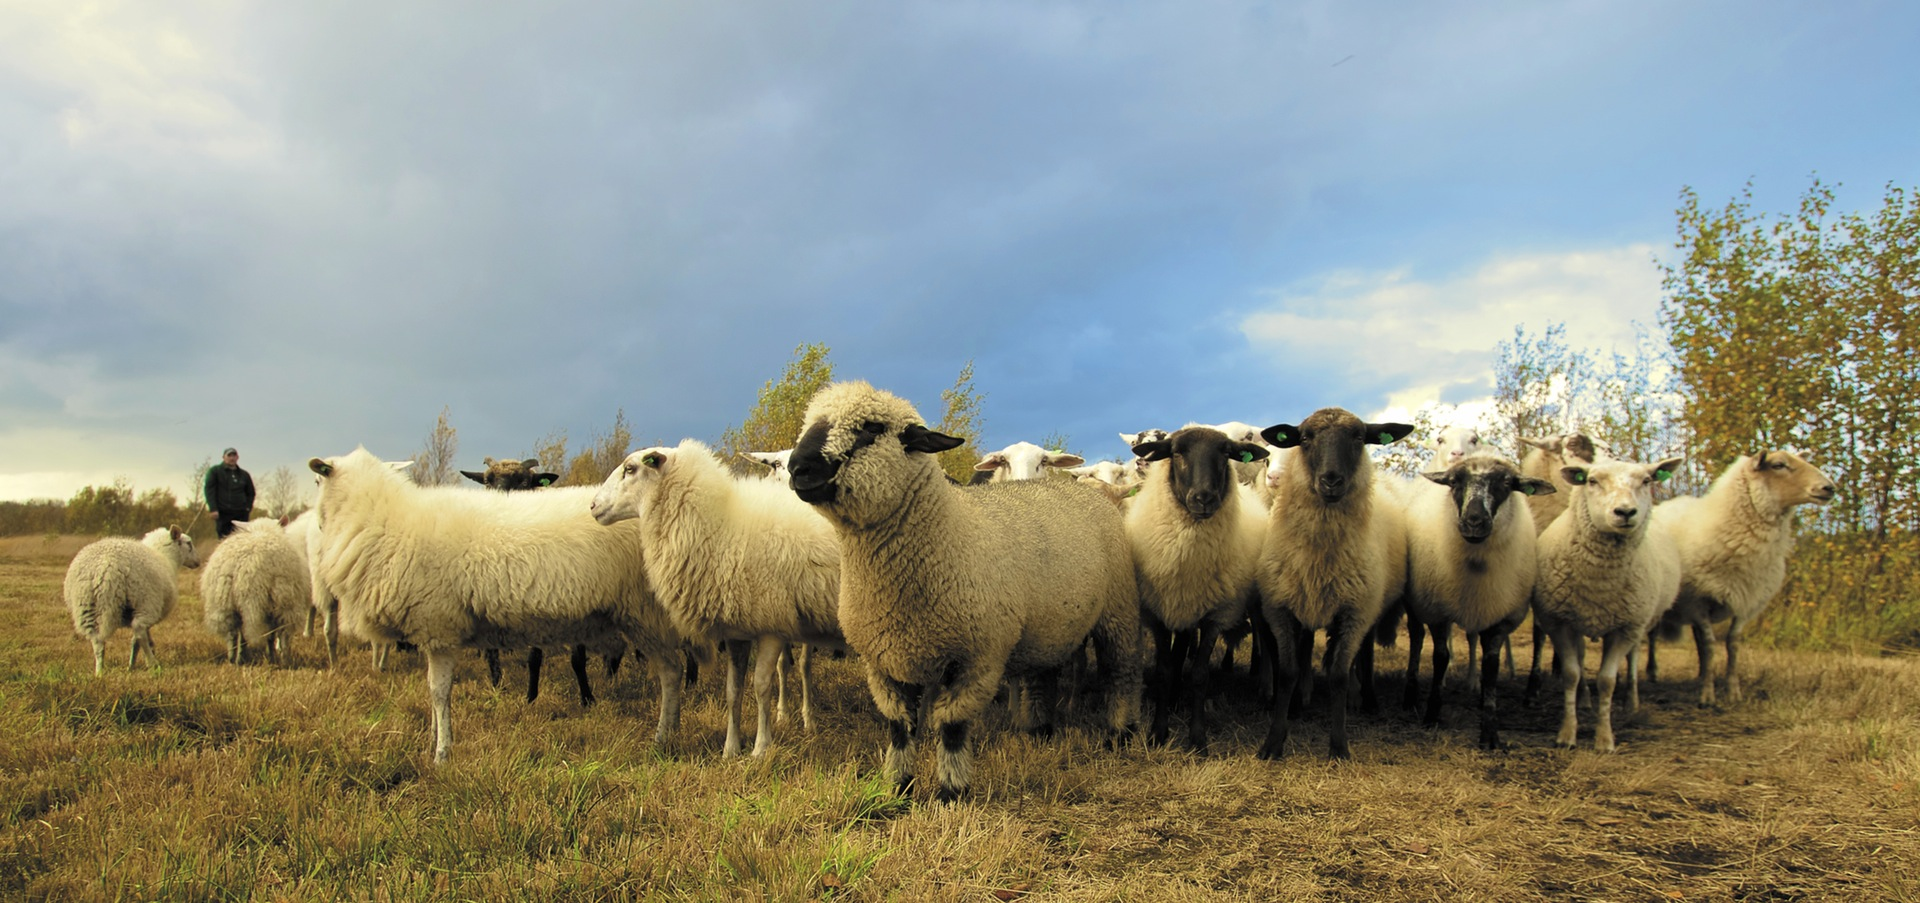 This Flock Of Sheep Is Very Real, Even Though It Looks Like A Hallucination.